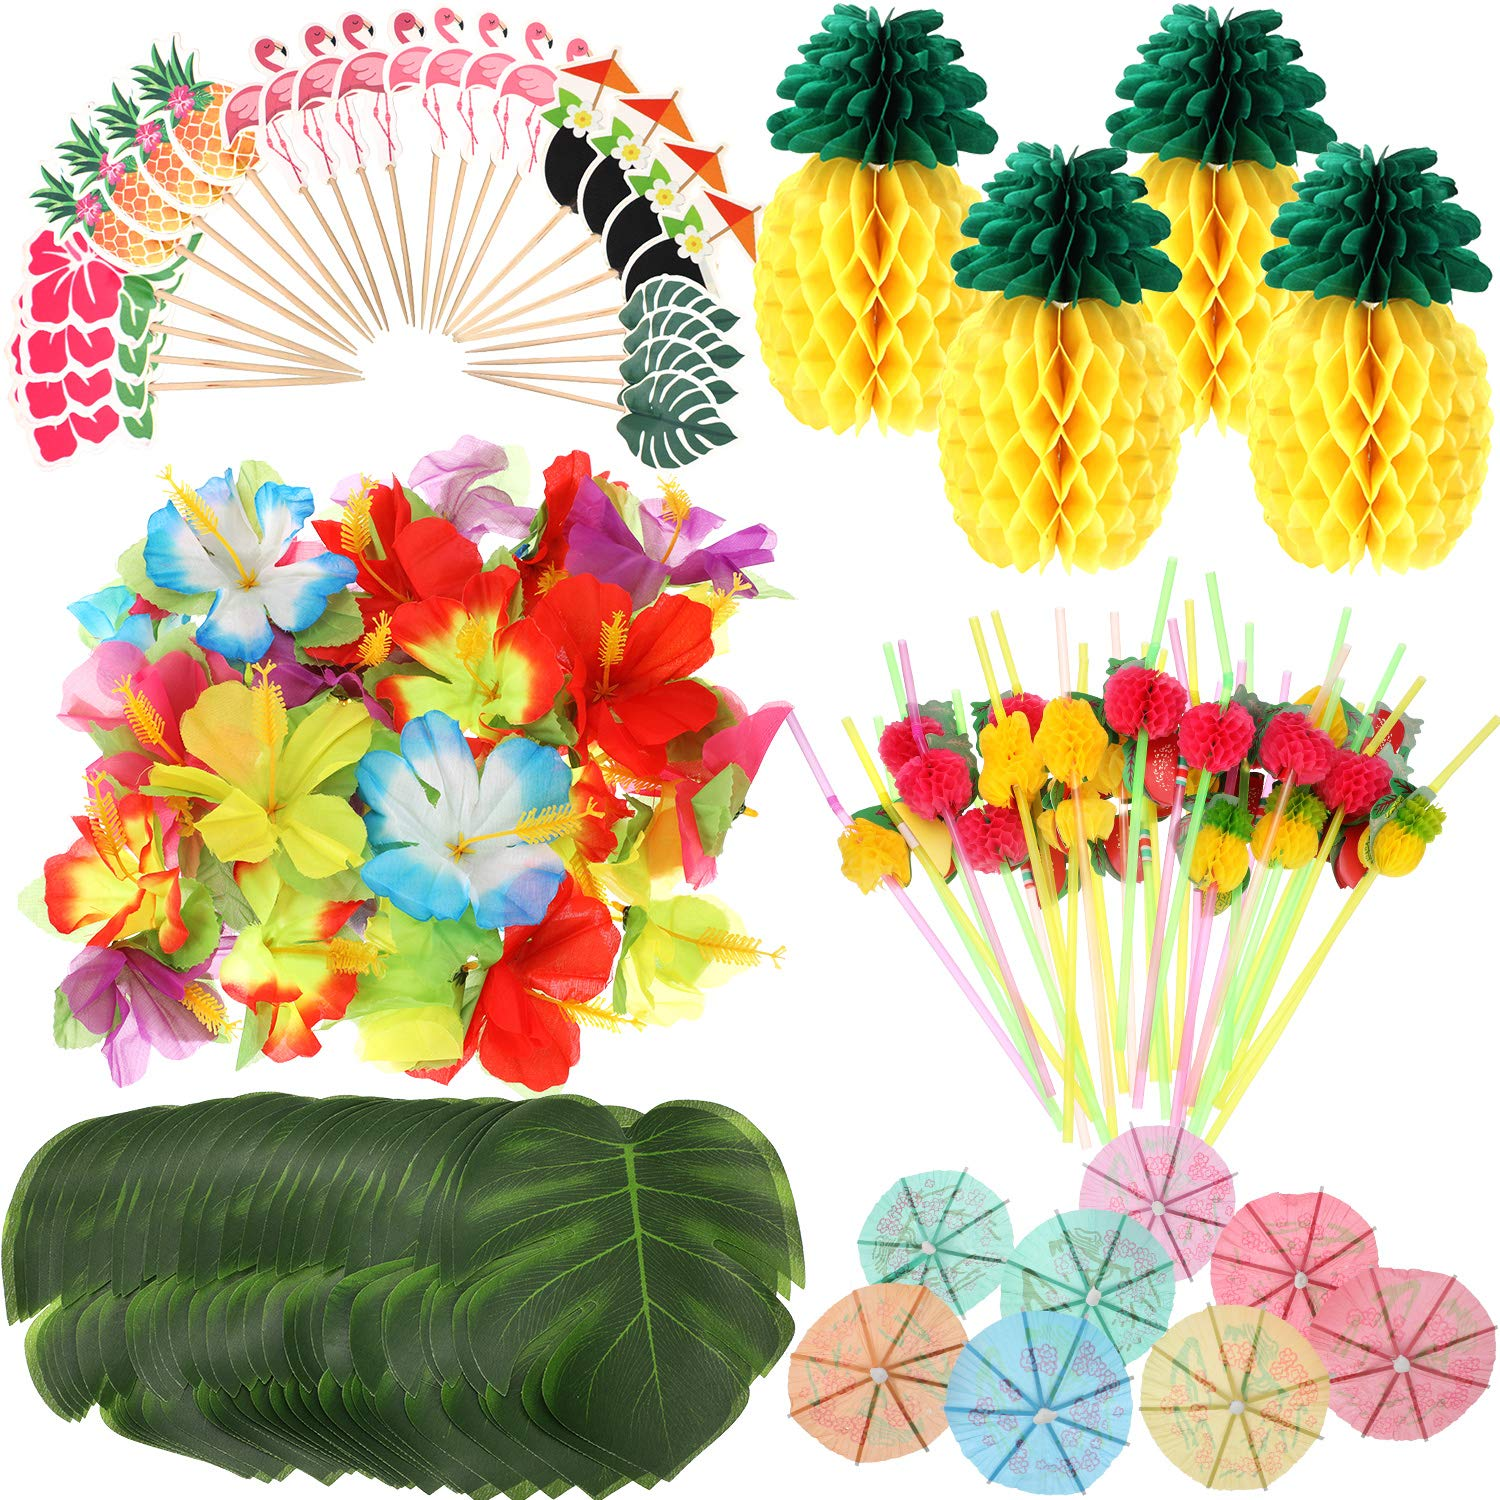 188 Pieces Hawaiian Luau Party Decorations,Include 30 Pieces Tropical Palm Leaves, 30 Pieces Hibiscus Flowers, 4 Pieces Paper Pineapples, 24 Pieces Cupcake Toppers, 50 Pieces 3D Fruit Straws, 50 Pieces Paper Umbrella by Zonon (Image #1)